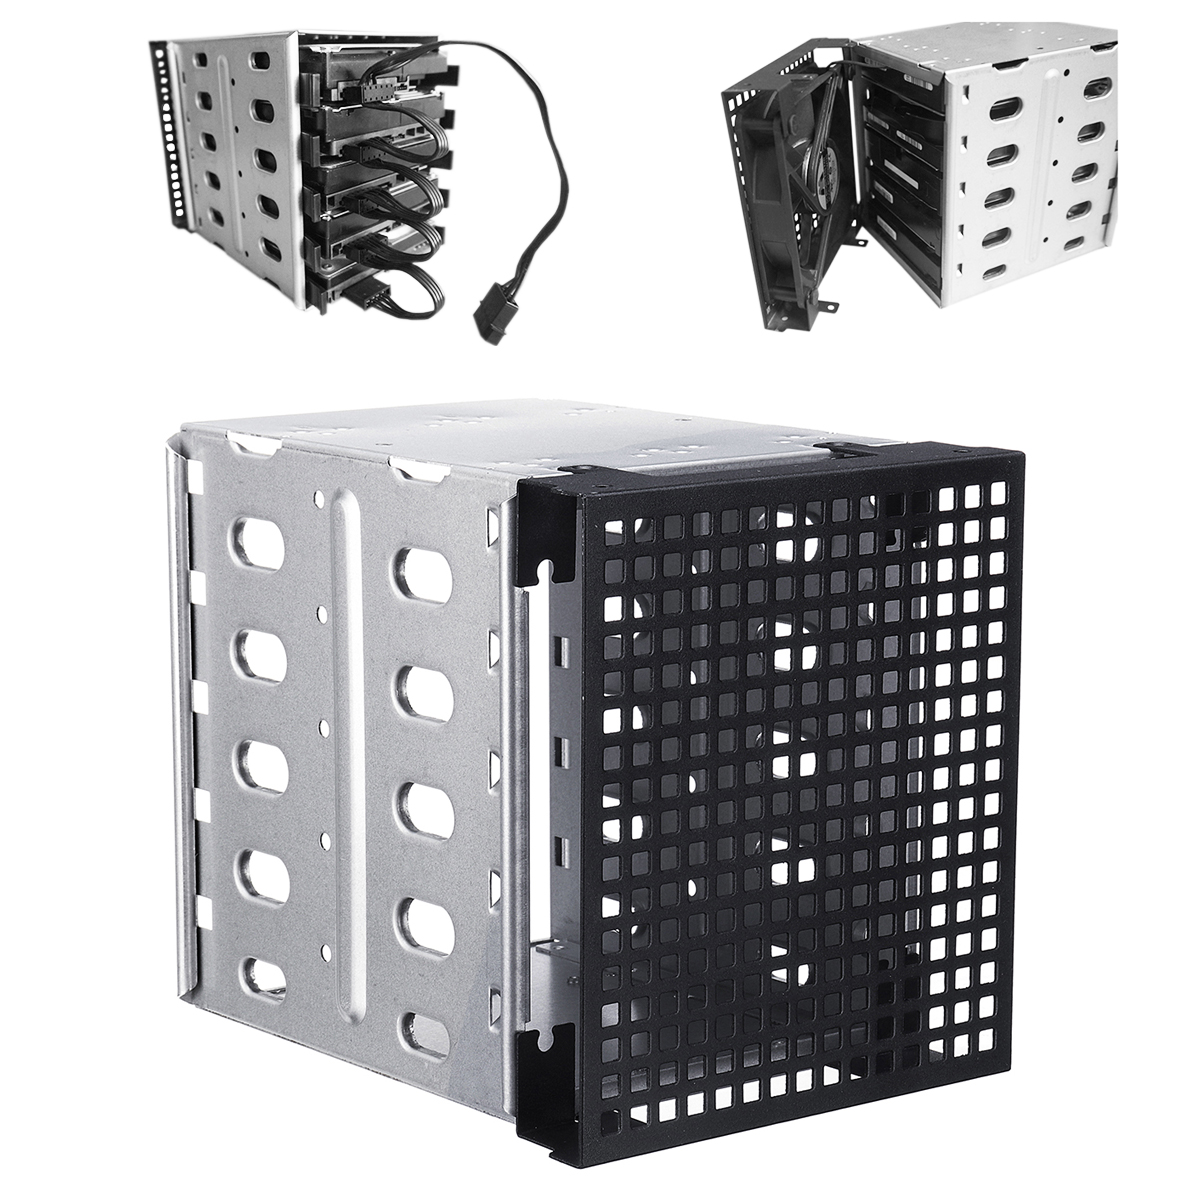 5.25 to 5x 3.5 SATA SAS HDD Cage Rack Hard Drive Tray Caddy Converter with Fan Space 5 25 to 3 5 sata sas hdd hard drive cage adapter tray caddy rack bracket for 3x 5 25 cd rom slot internal or external pc diy